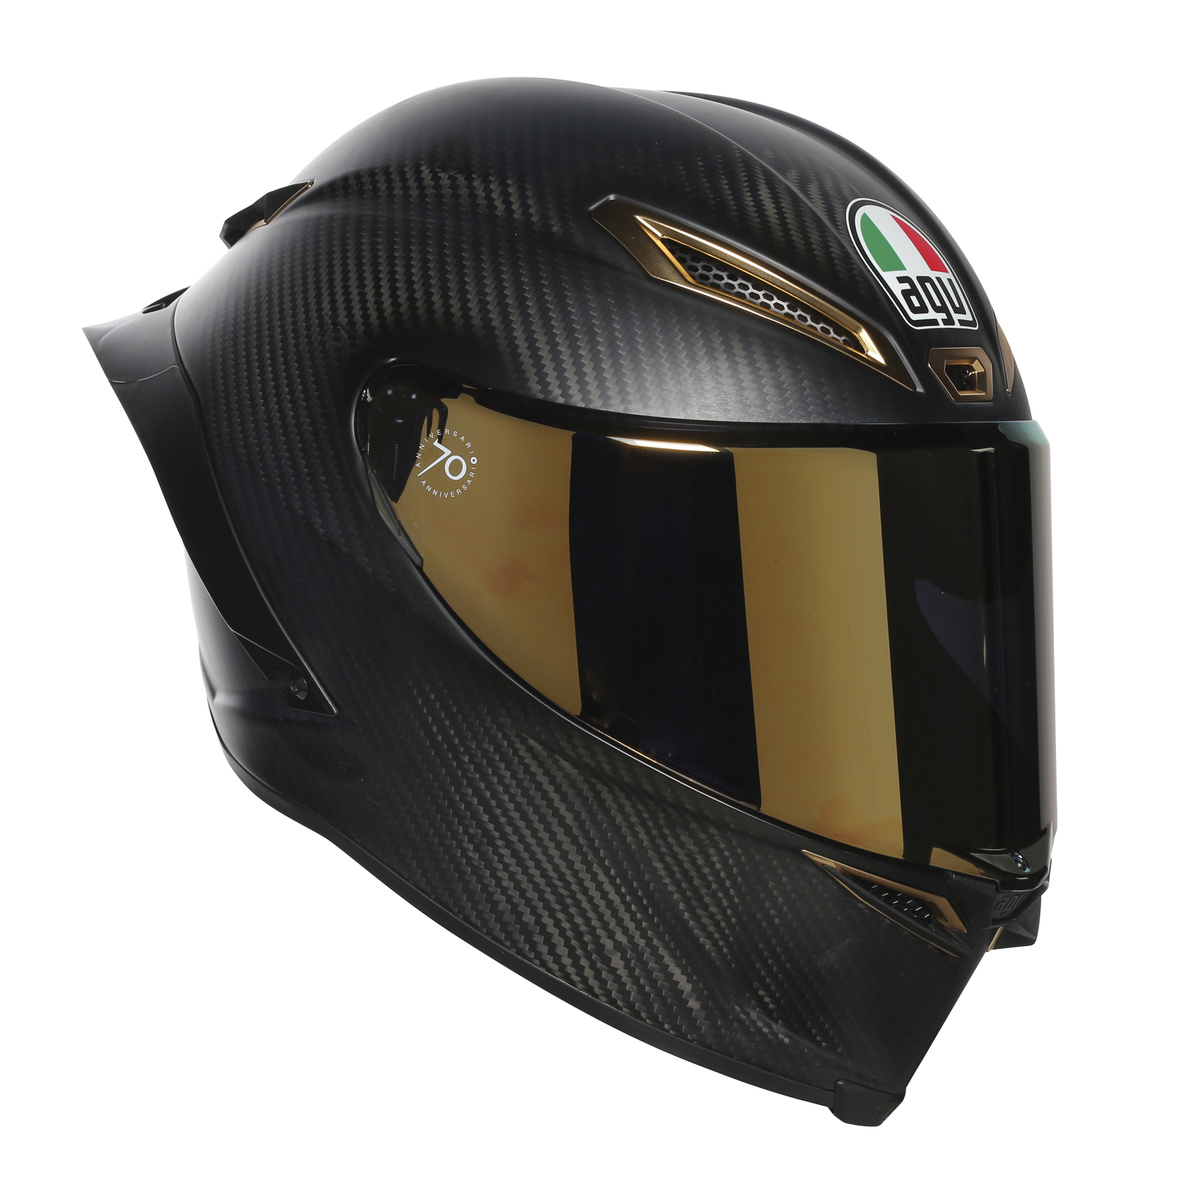 helm keren agv pista gp r anniversario edisi ultah ke 70 tahun harga juta limited. Black Bedroom Furniture Sets. Home Design Ideas